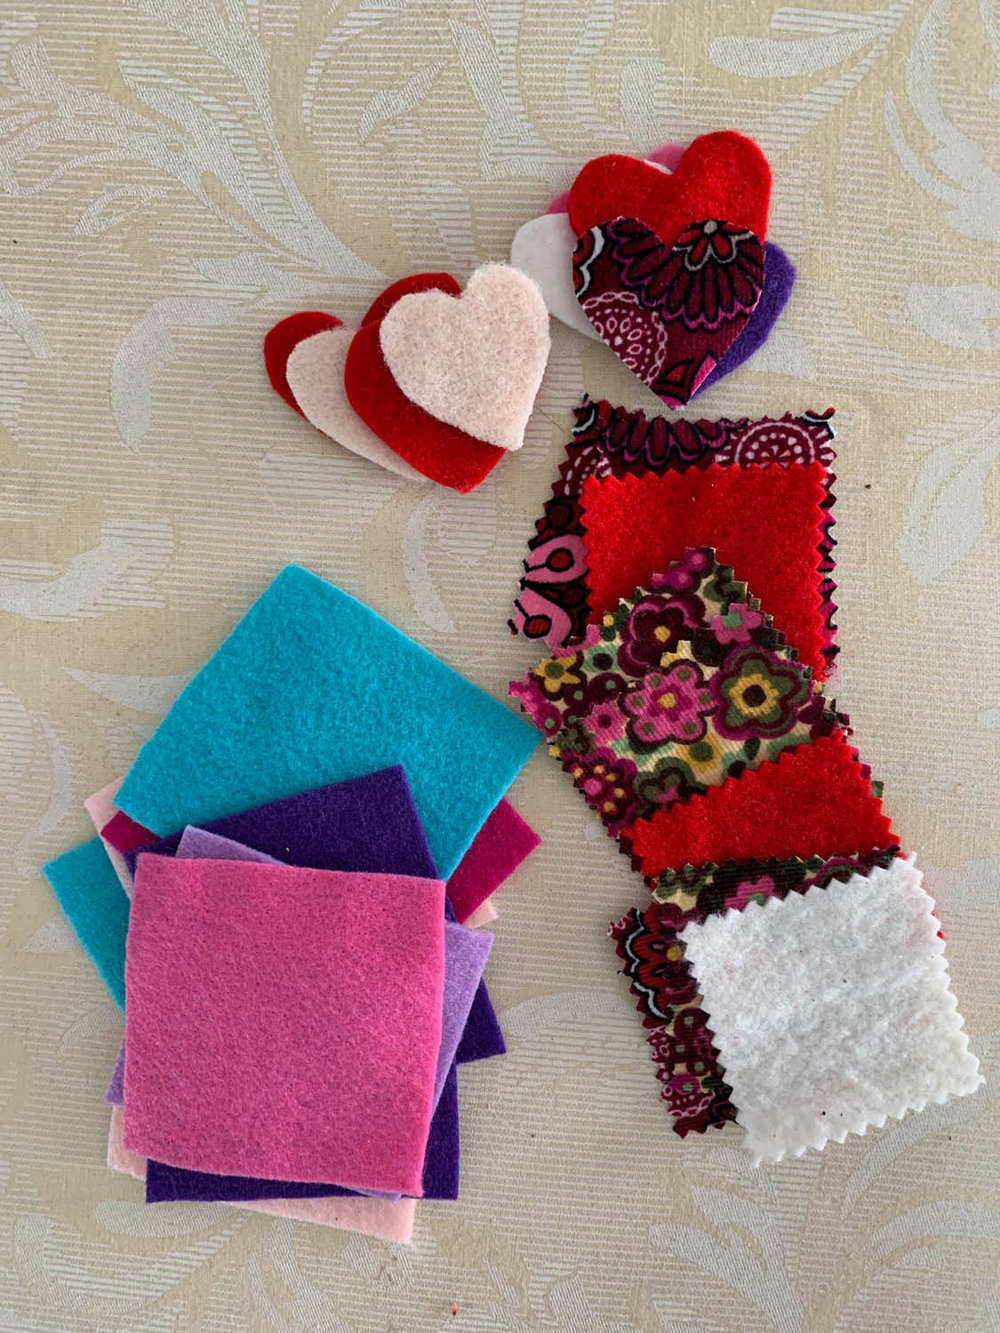 Felt squares and heart shapes with pinked felt and fabric squares